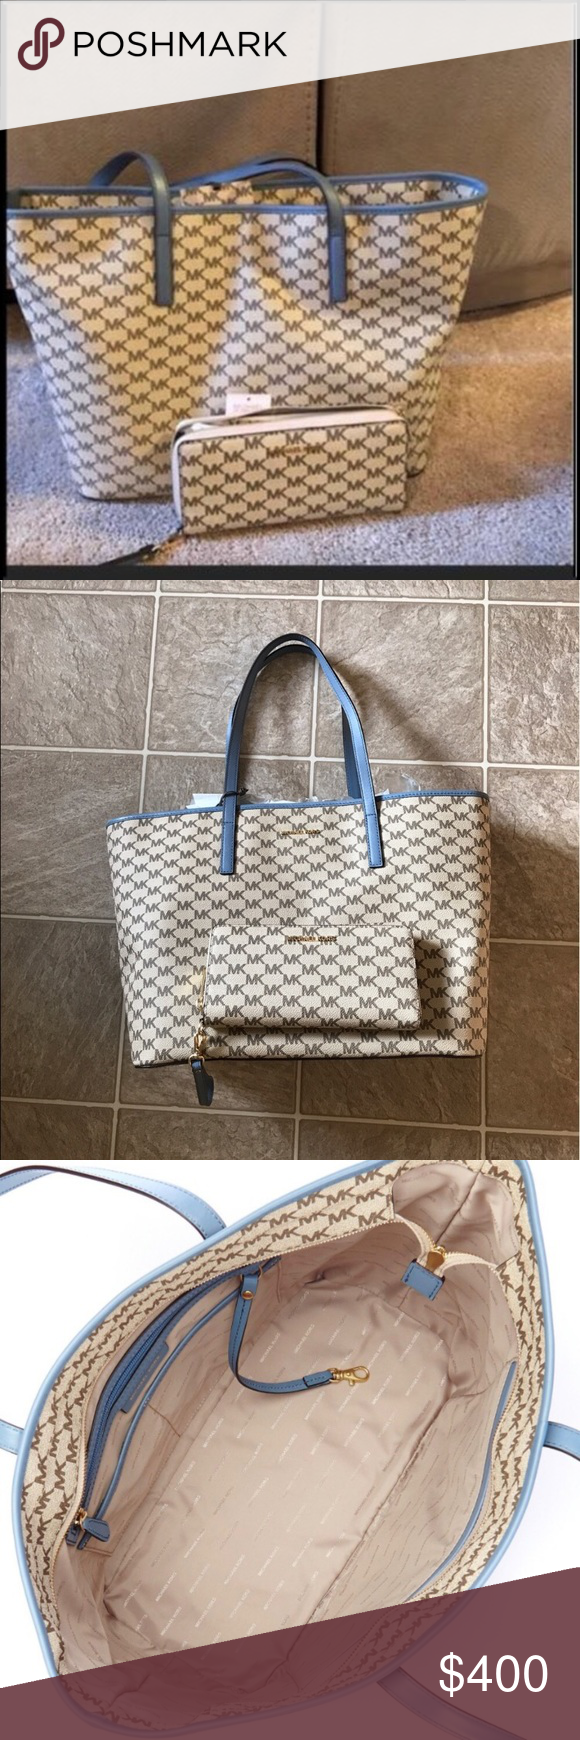 4e12d14af0aa Michael Kors Tan and blue tote purse   Wristlet Mercer tote is designed in  an elegant new interpretation of the classic MK logo